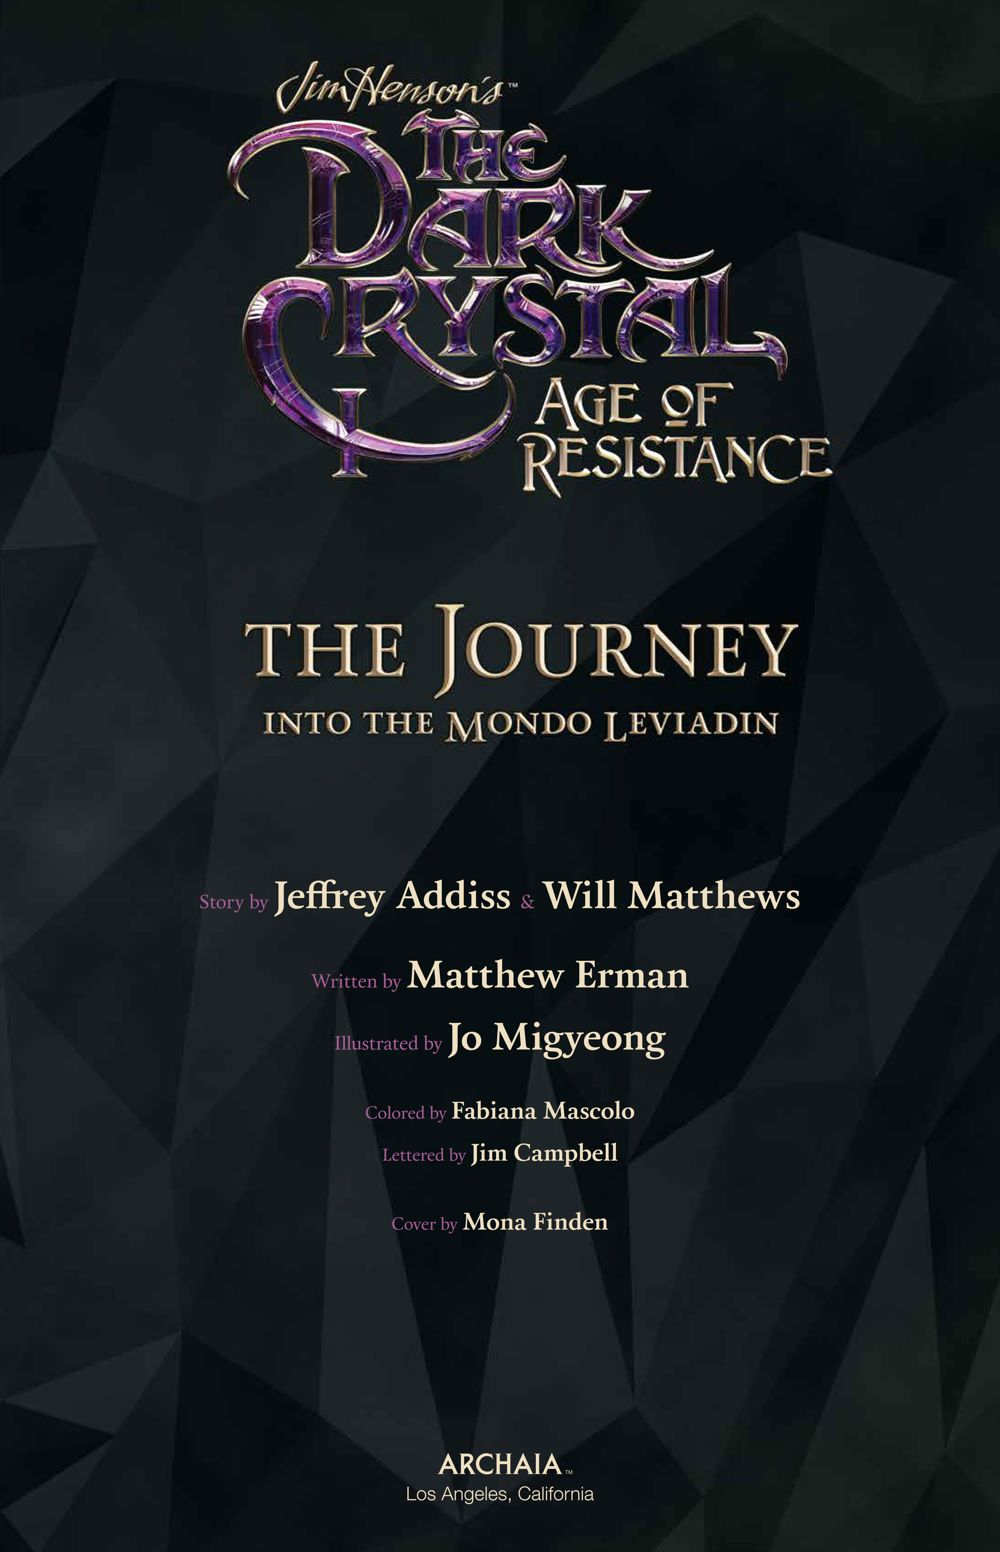 DarkCrystal_AgeResistance_v3_Journey_PRESS_5 ComicList Previews: JIM HENSON'S THE DARK CRYSTAL AGE OF RESISTANCE VOLUME 3 THE JOURNEY INTO THE MONDO LEVIADIN HC